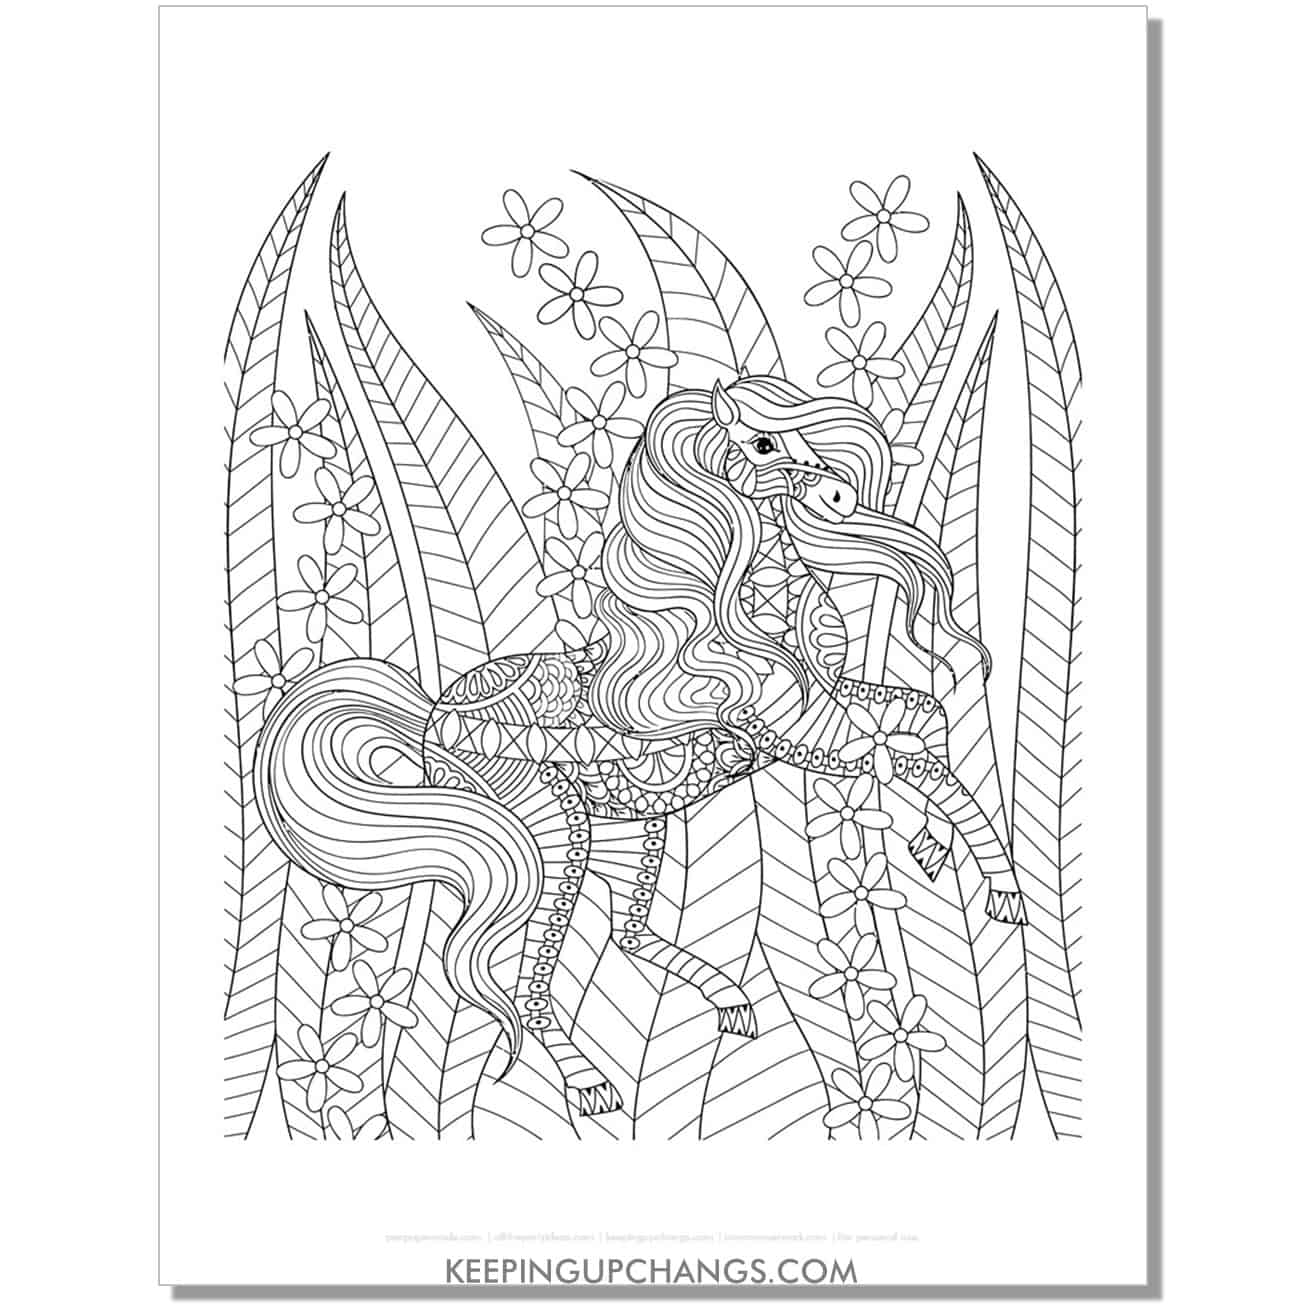 unicorn in tall grass zentangle coloring page.